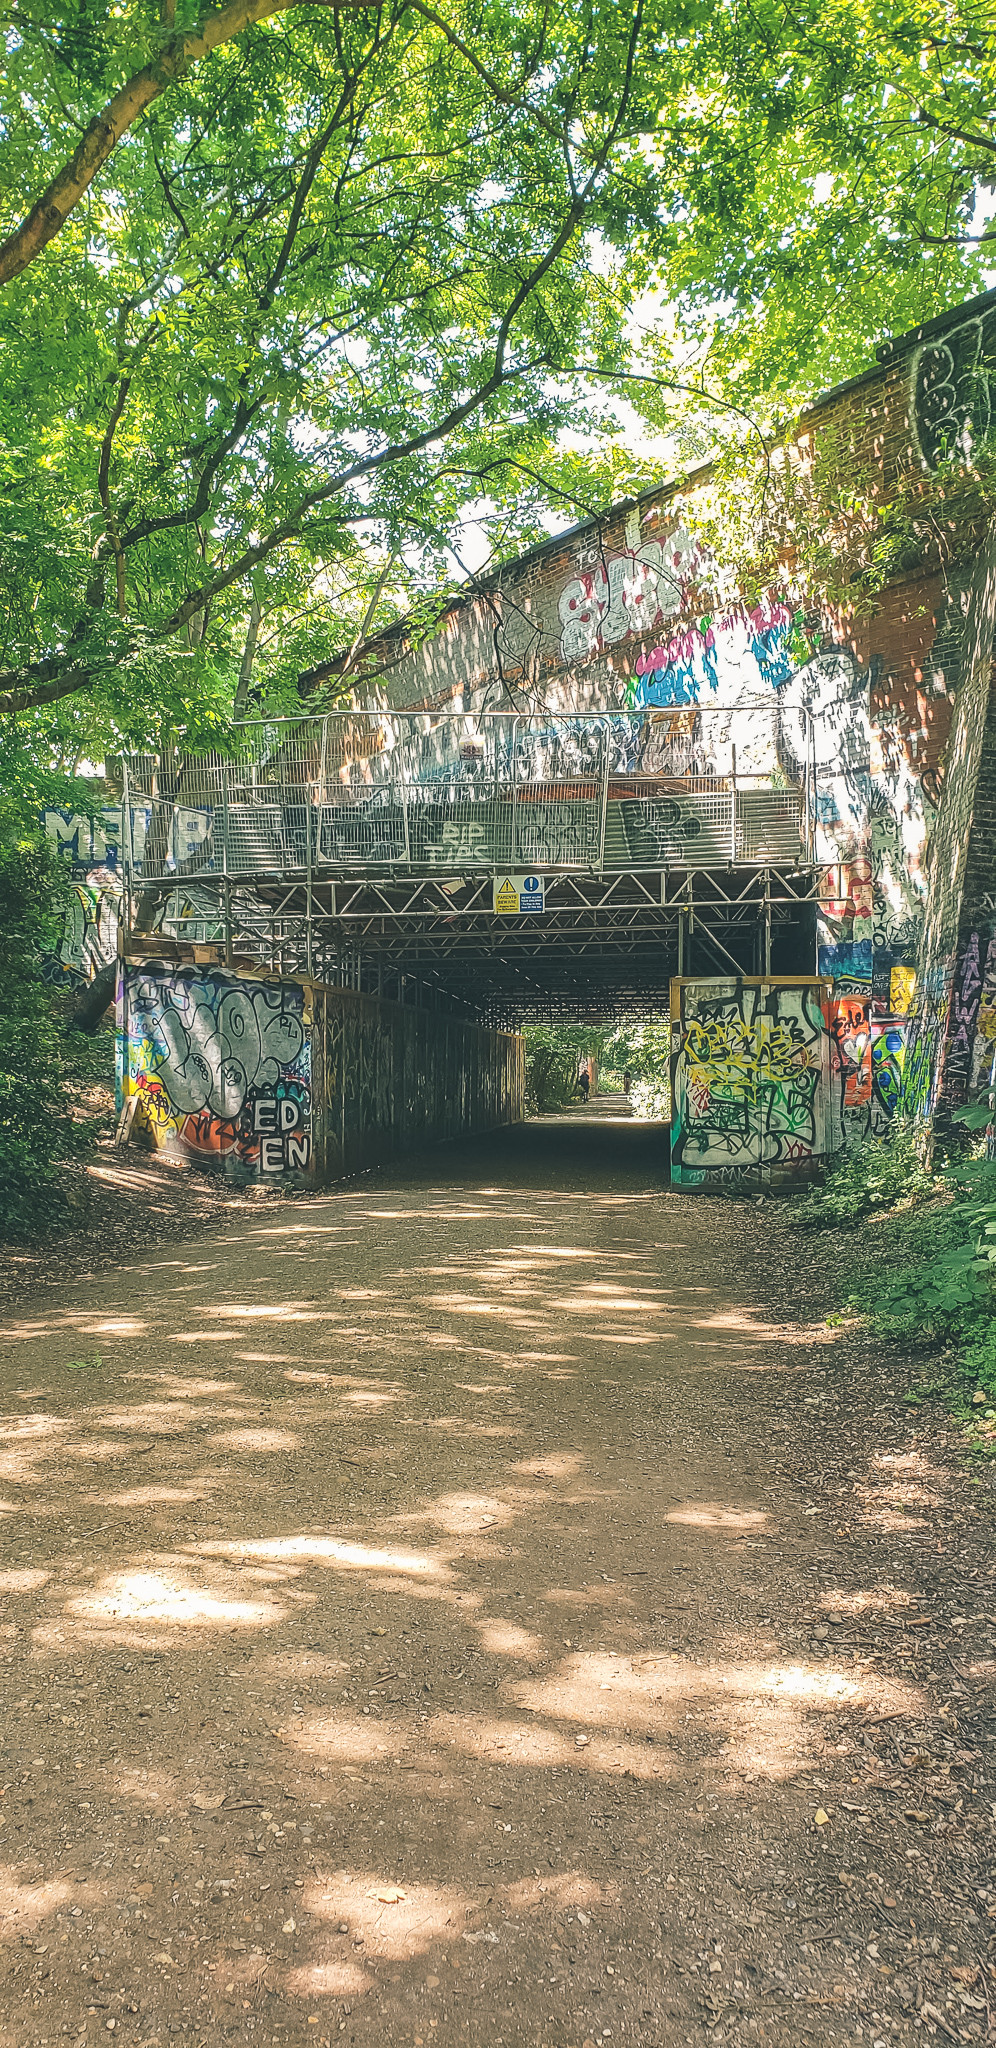 old train station graffiti tunnel bridge